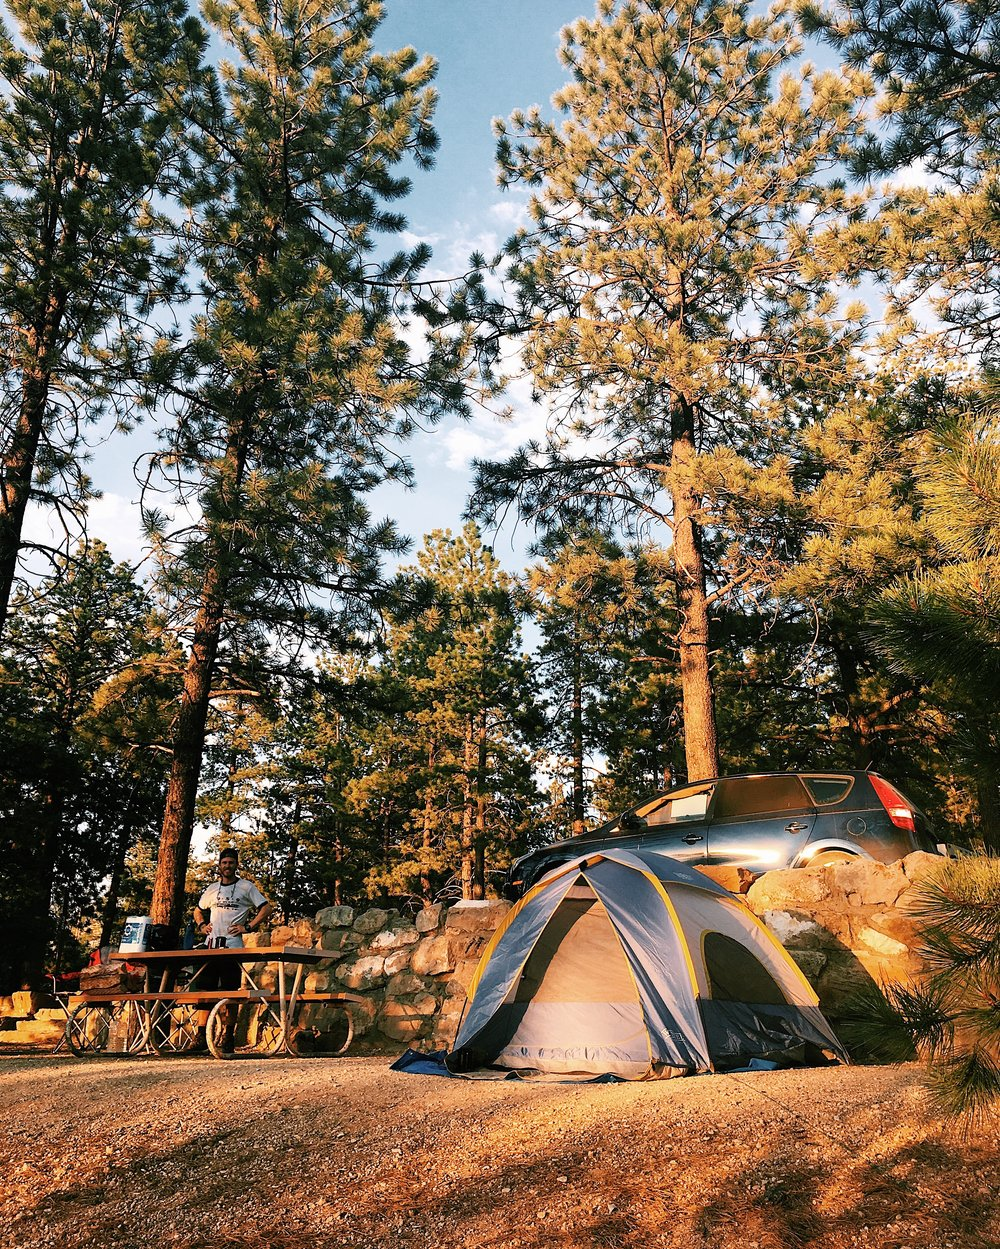 Our campsite in Bryce Canyon National Park, UT